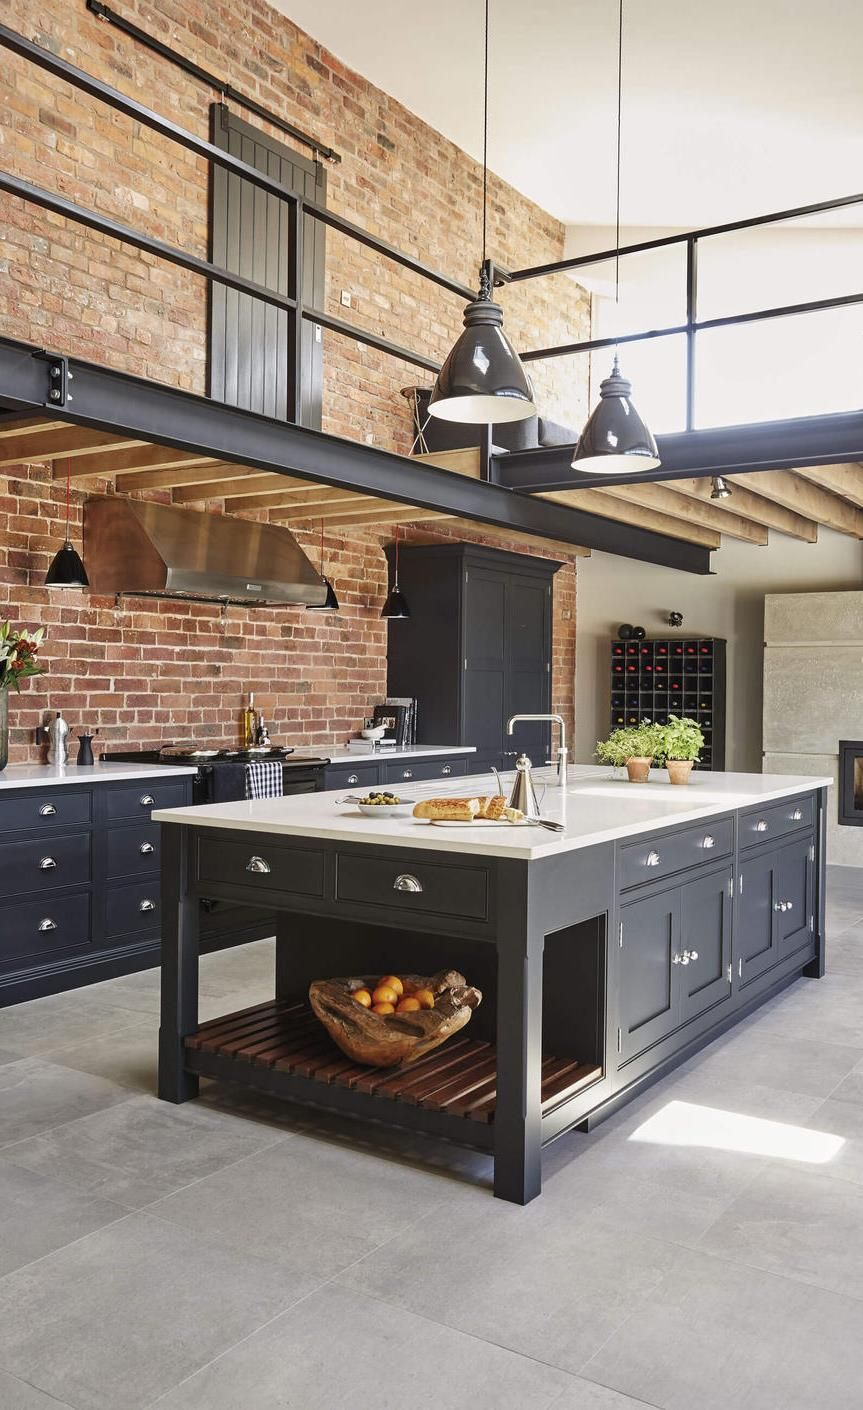 20 Dream Loft Kitchen Design Ideas Industrial Kitchen Design Industrial Style Kitchen Loft Kitchen